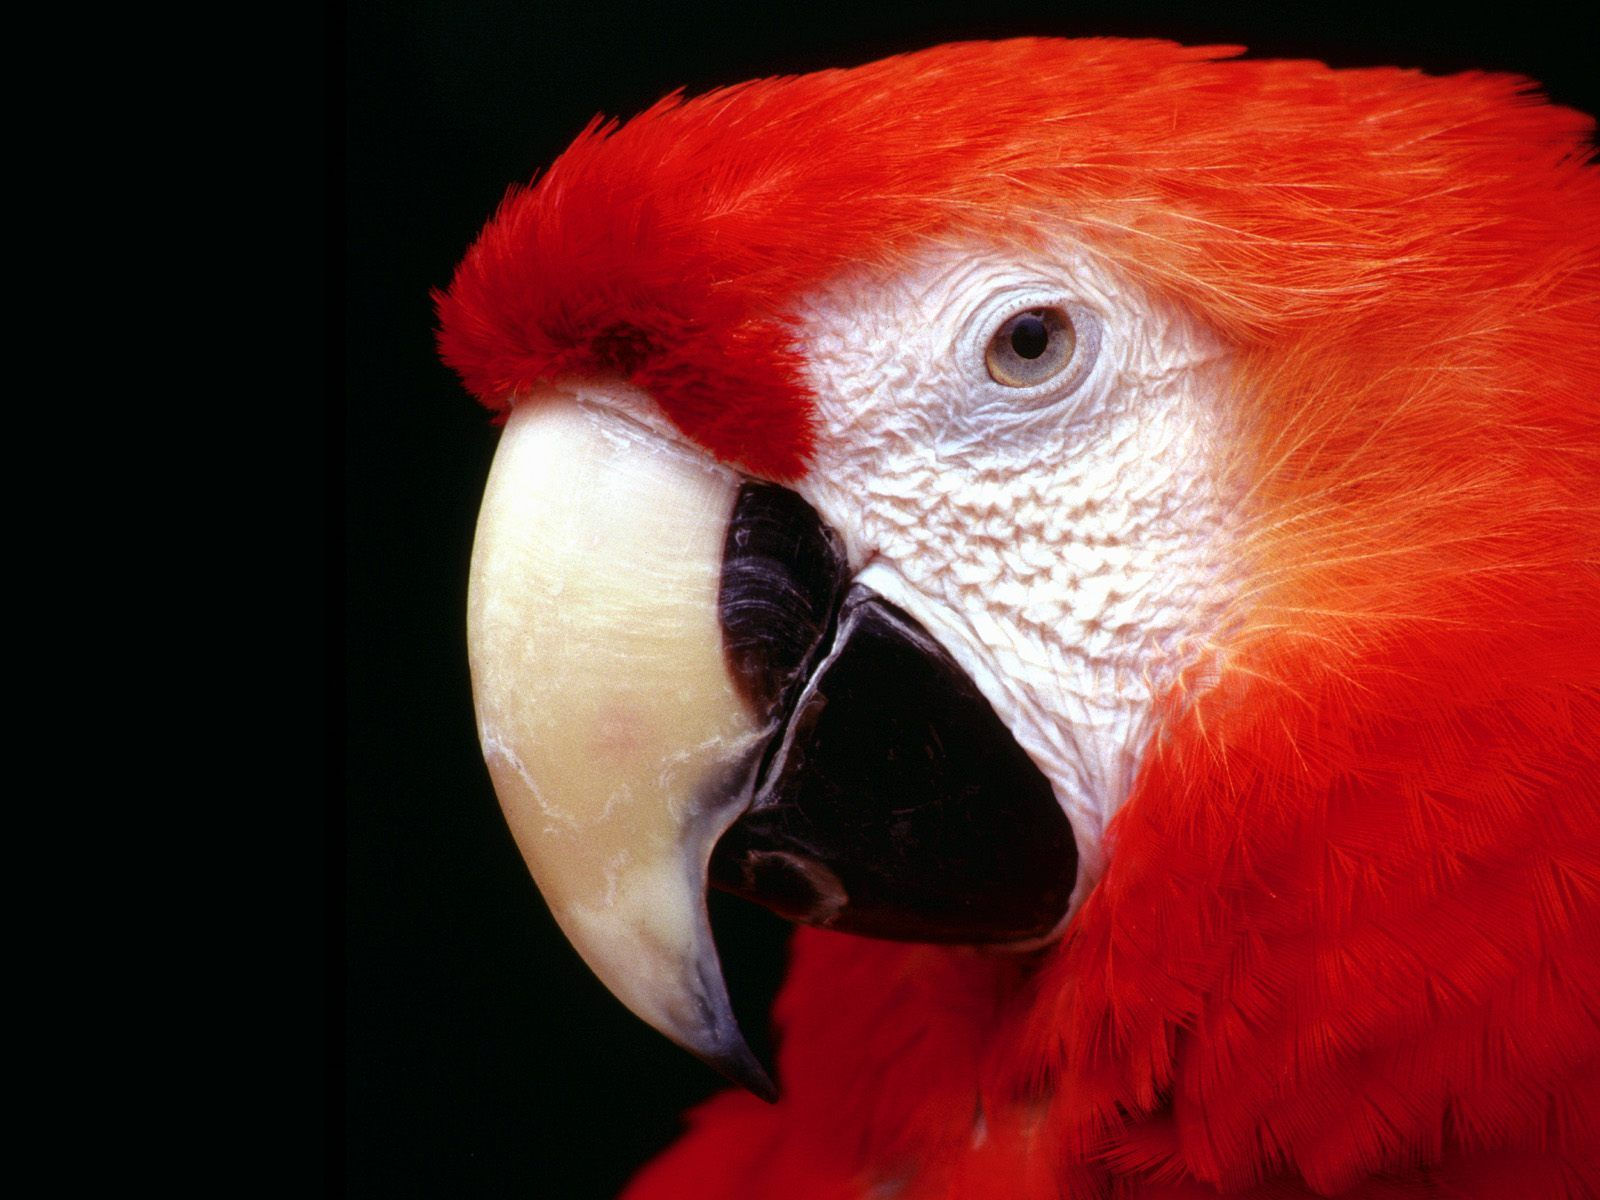 Red Macaw Face Close Up Wallpaper 1600x1200